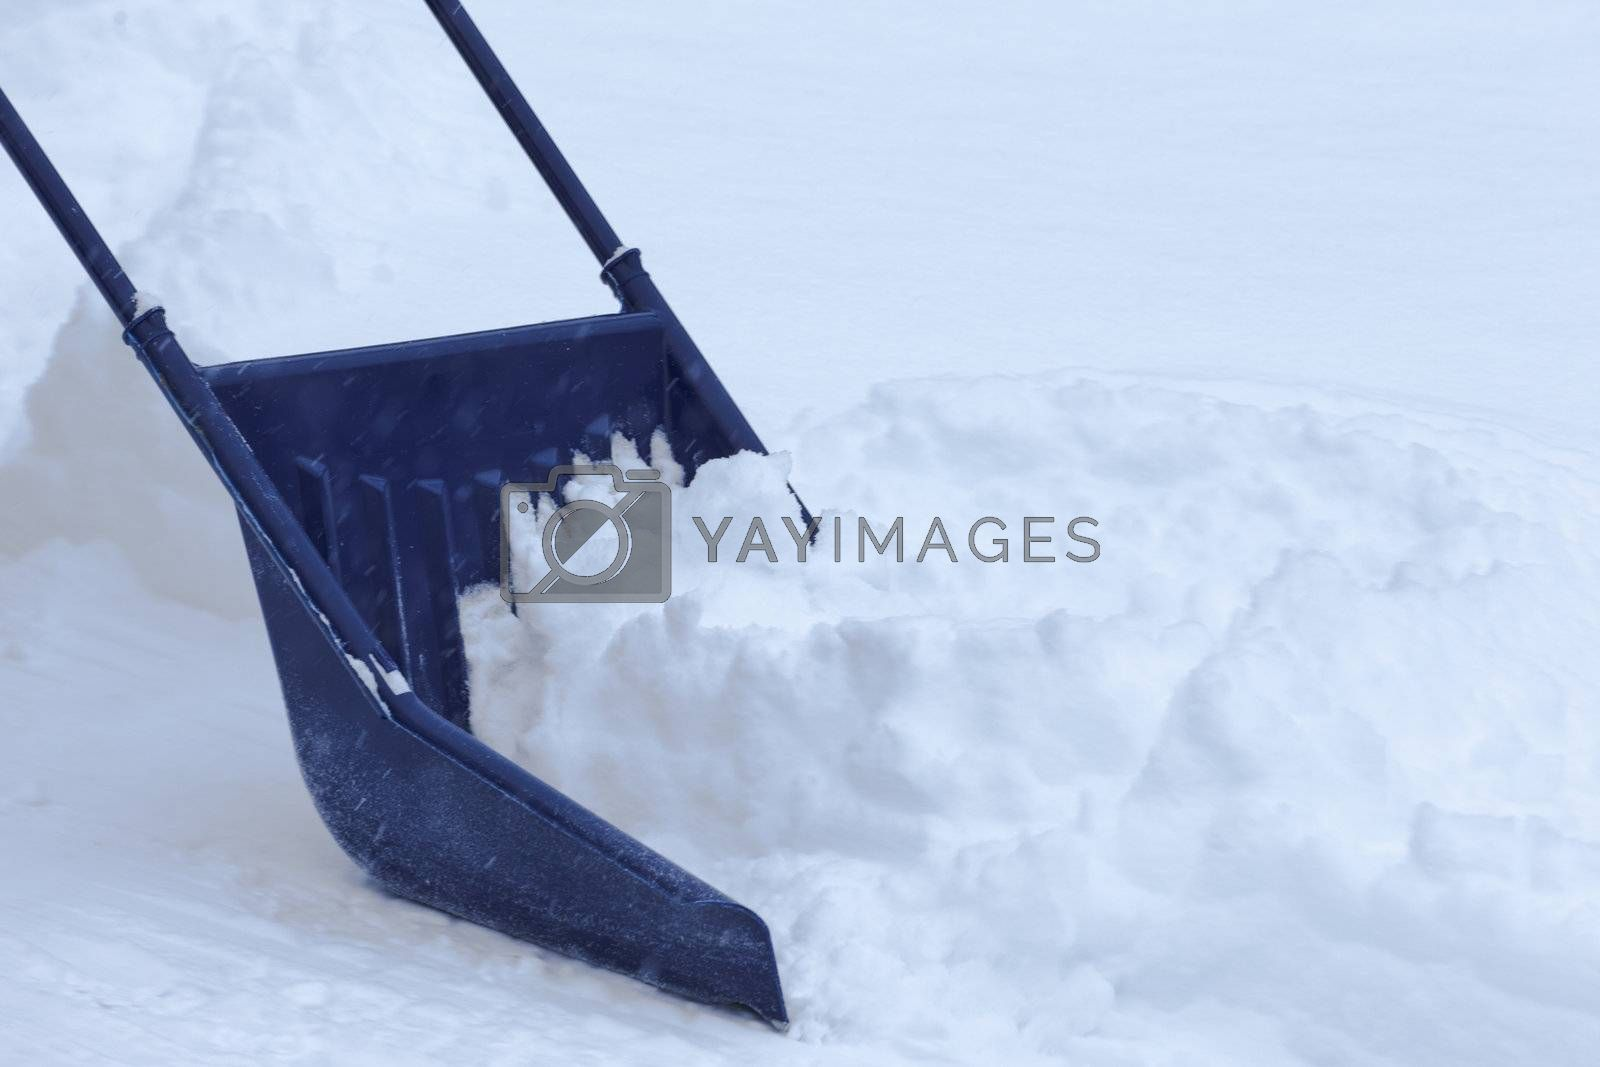 Manual snow removal from driveway using a snow scoop after blizzard